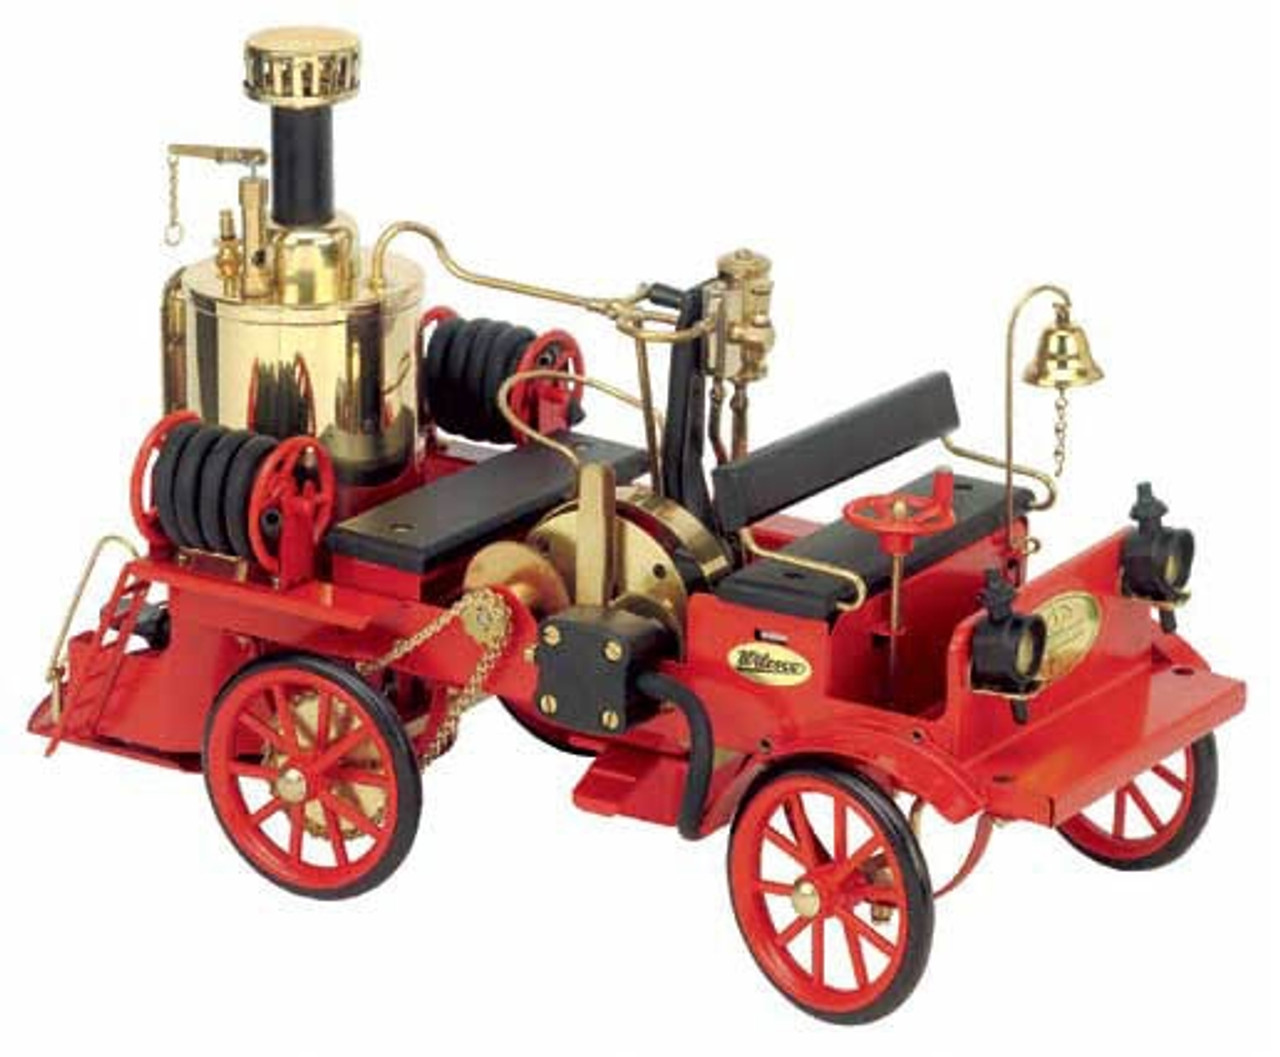 Wilesco D305 Model Steam Fire Engine Yesteryear Toys Books Inc